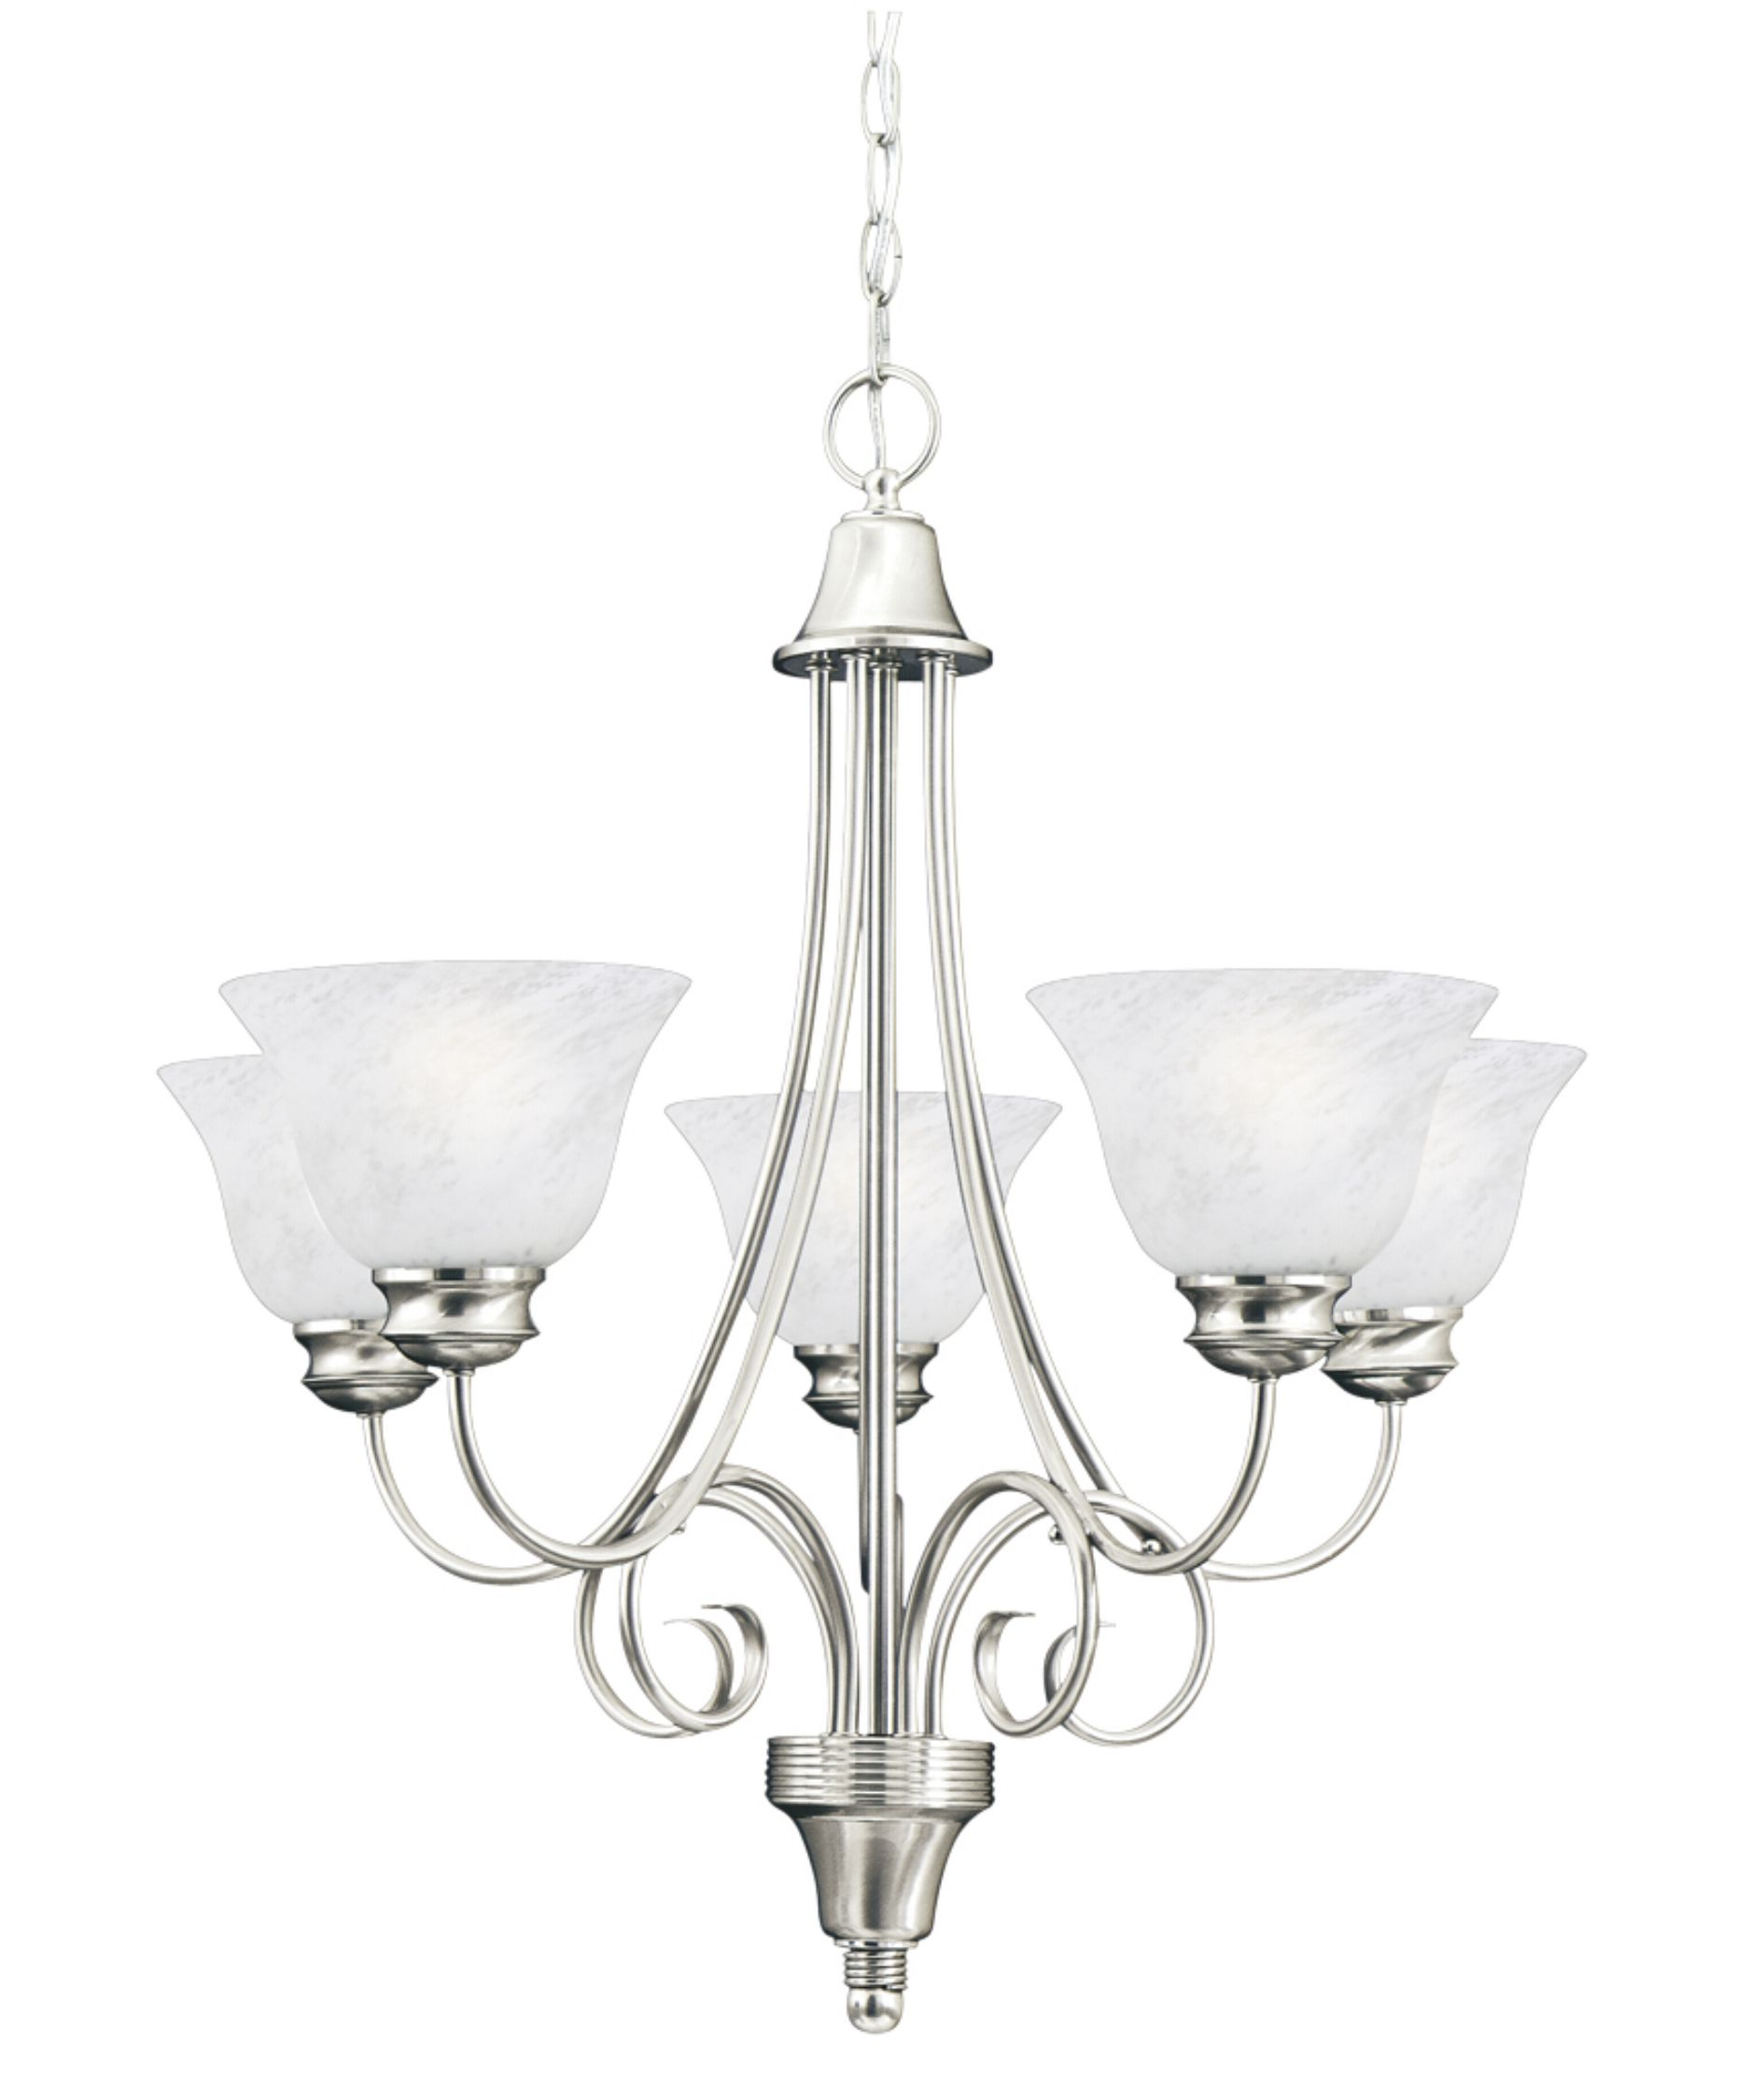 Brushed Nickle Dining Room Light Fixtures Hanging Brushed Nickel